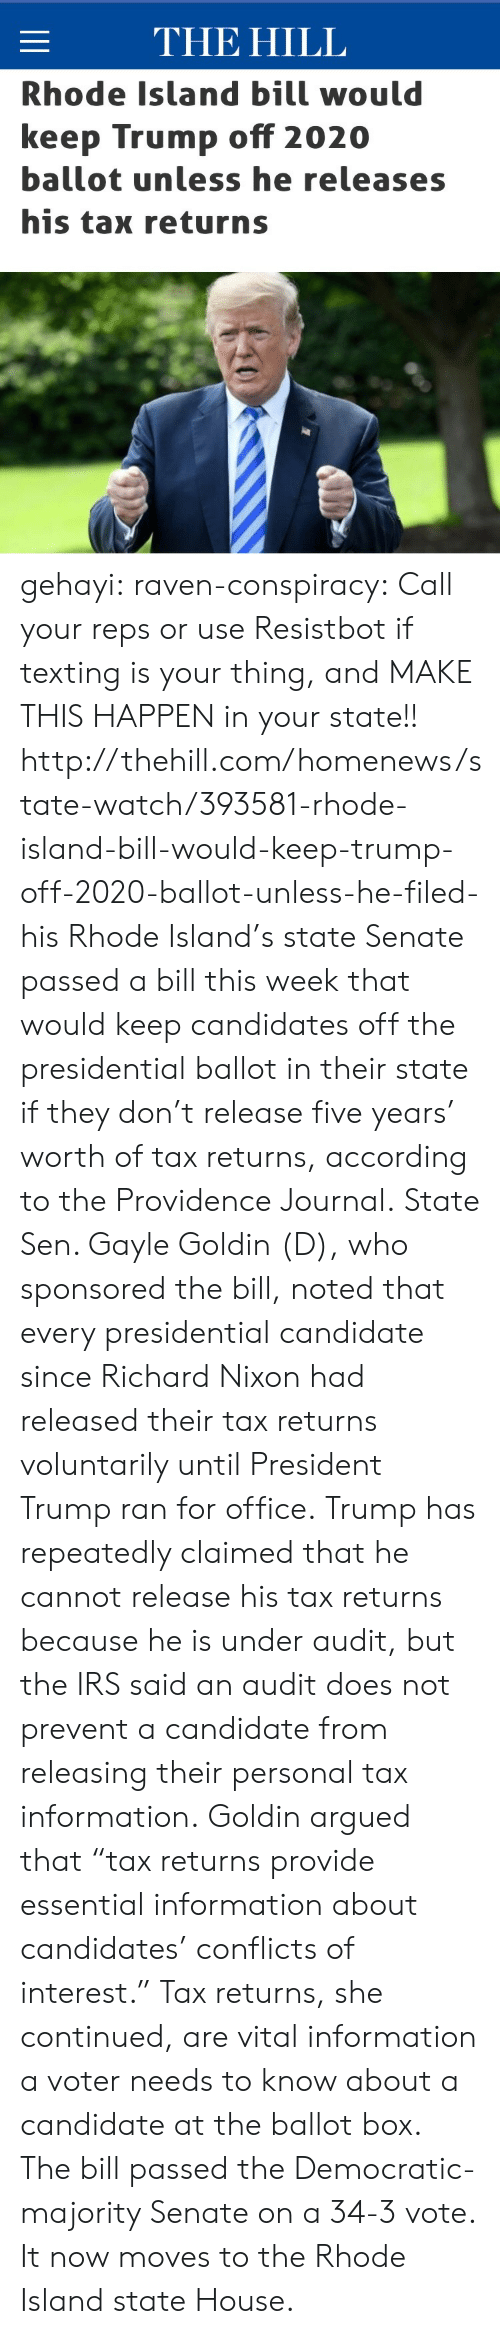 "irs: THE HILL  Rhode Island bill would  keep Trump off 2020  ballot unless he releases  his tax returns gehayi:  raven-conspiracy:  Call your reps or use Resistbot if texting is your thing, and MAKE THIS HAPPEN in your state!!  http://thehill.com/homenews/state-watch/393581-rhode-island-bill-would-keep-trump-off-2020-ballot-unless-he-filed-his   Rhode Island's state Senate passed a bill this week that would keep candidates off the presidential ballot in their state if they don't release five years' worth of tax returns, according to the Providence Journal. State Sen. Gayle Goldin (D), who sponsored the bill, noted that every presidential candidate since Richard Nixon had released their tax returns voluntarily until President Trump ran for office. Trump has repeatedly claimed that he cannot release his tax returns because he is under audit, but the IRS said an audit does not prevent a candidate from releasing their personal tax information. Goldin argued that ""tax returns provide essential information about candidates' conflicts of interest."" Tax returns, she continued, are vital information a voter needs to know about a candidate at the ballot box. The bill passed the Democratic-majority Senate on a 34-3 vote. It now moves to the Rhode Island state House."